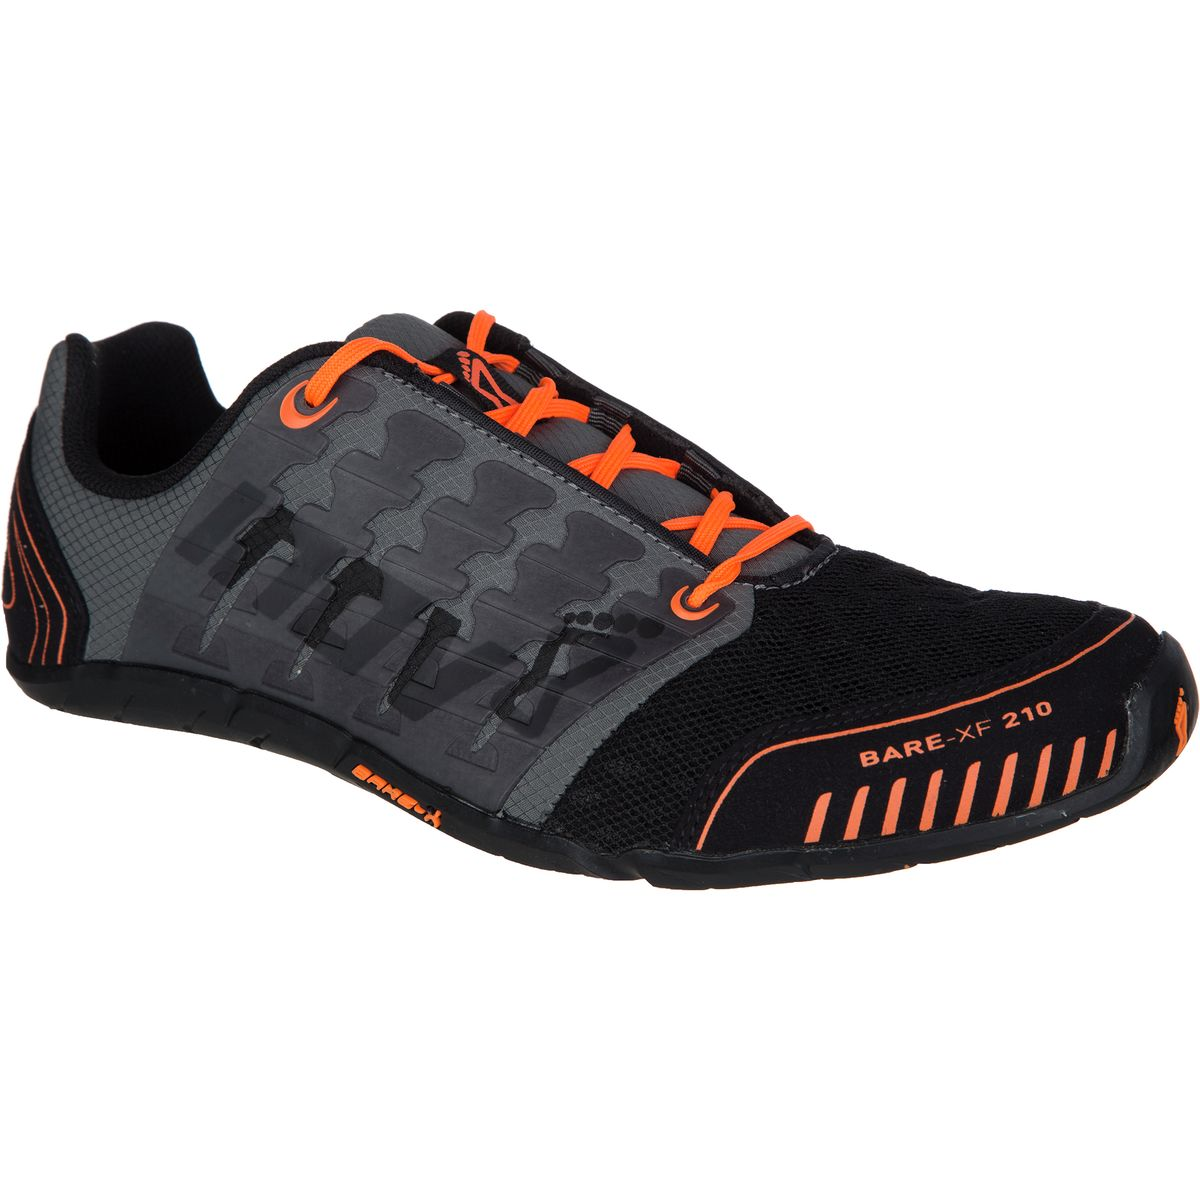 photo: Inov-8 Bare-XF 210 barefoot / minimal shoe